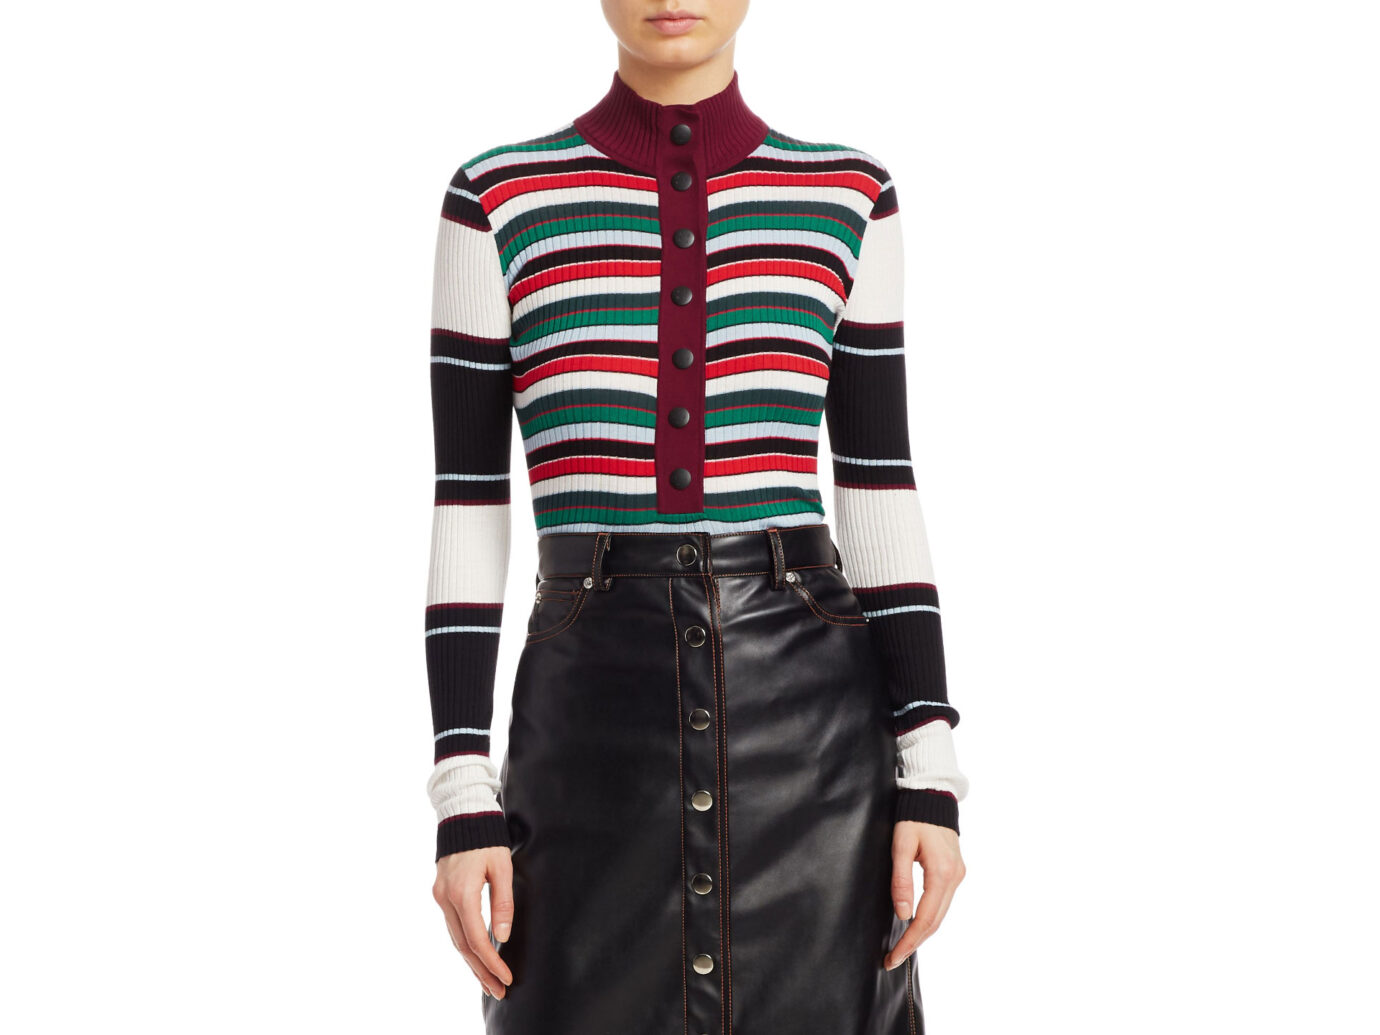 Proenza Schouler PSWL Ribbed Rugby Striped Turtleneck Sweater